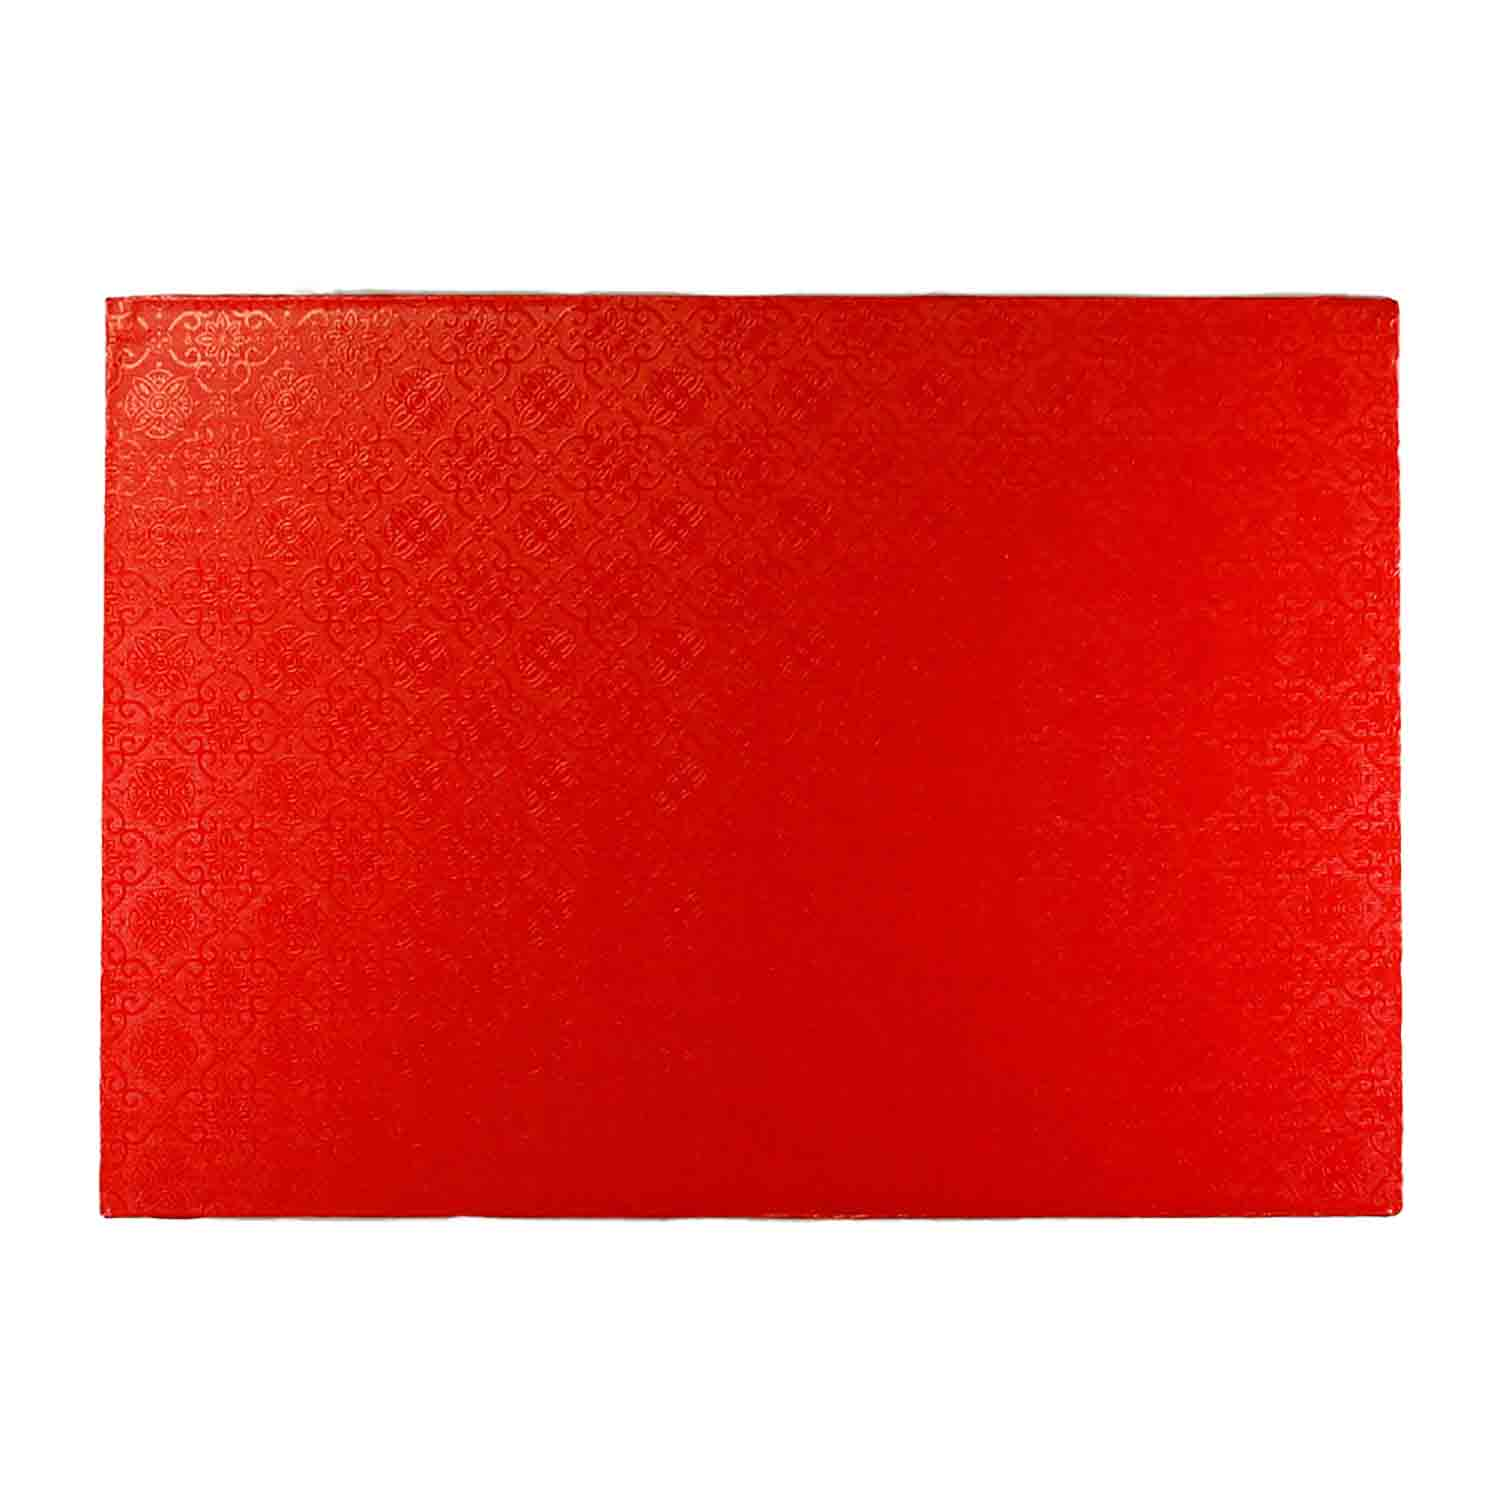 "14"" x 19"" Rectangle Red Foil Half Sheet Cake Drum"